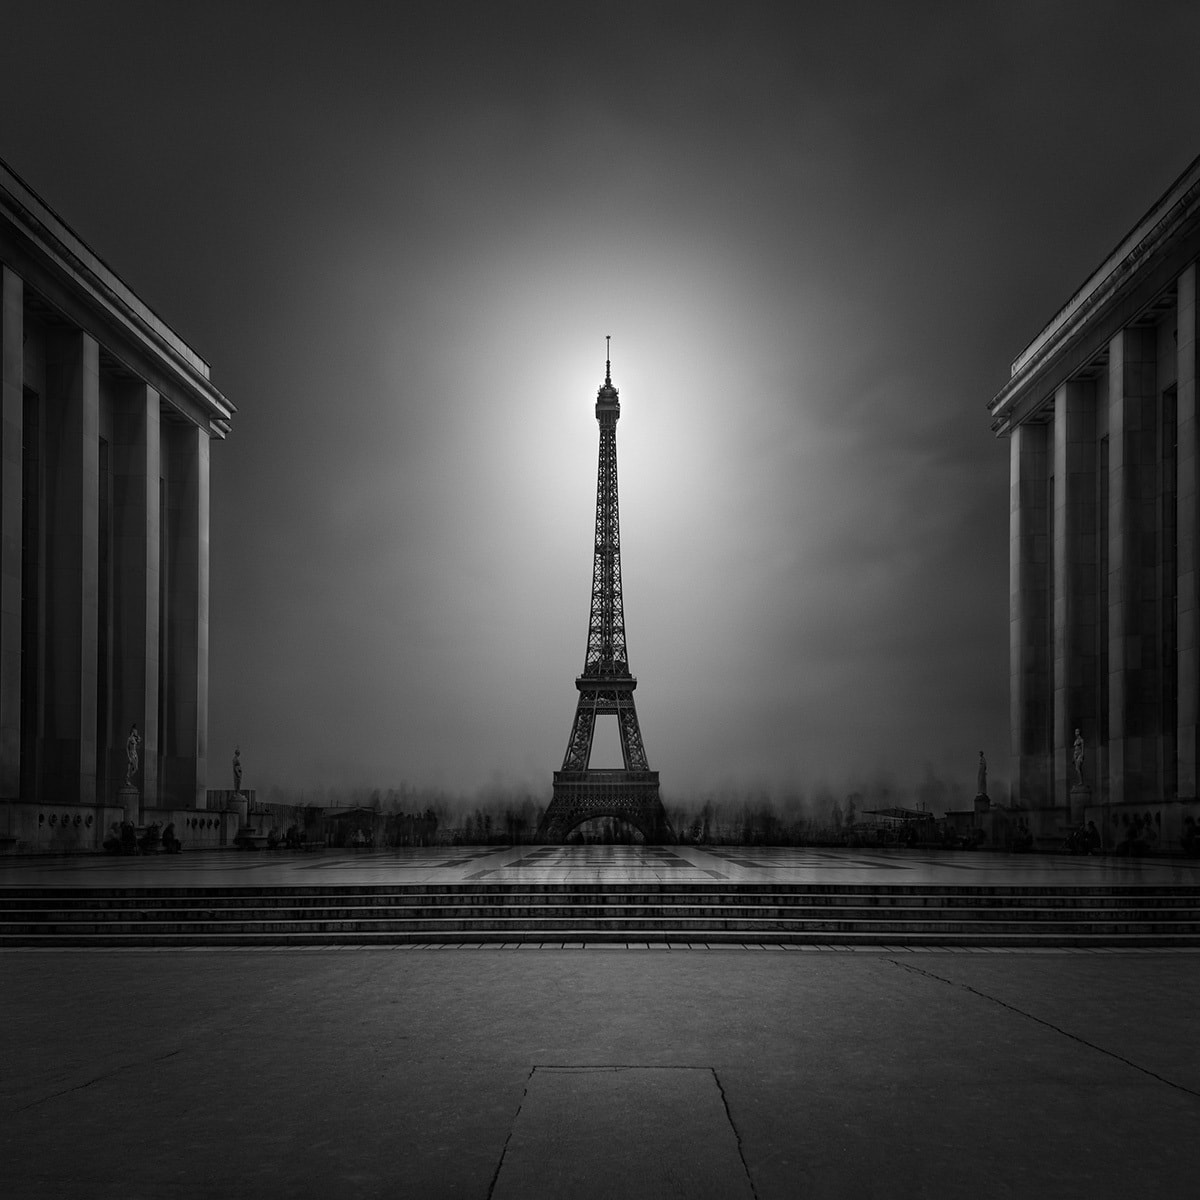 Enlightenment I - Eiffel Tower Trocadero © Julia Anna Gospodarou 2017